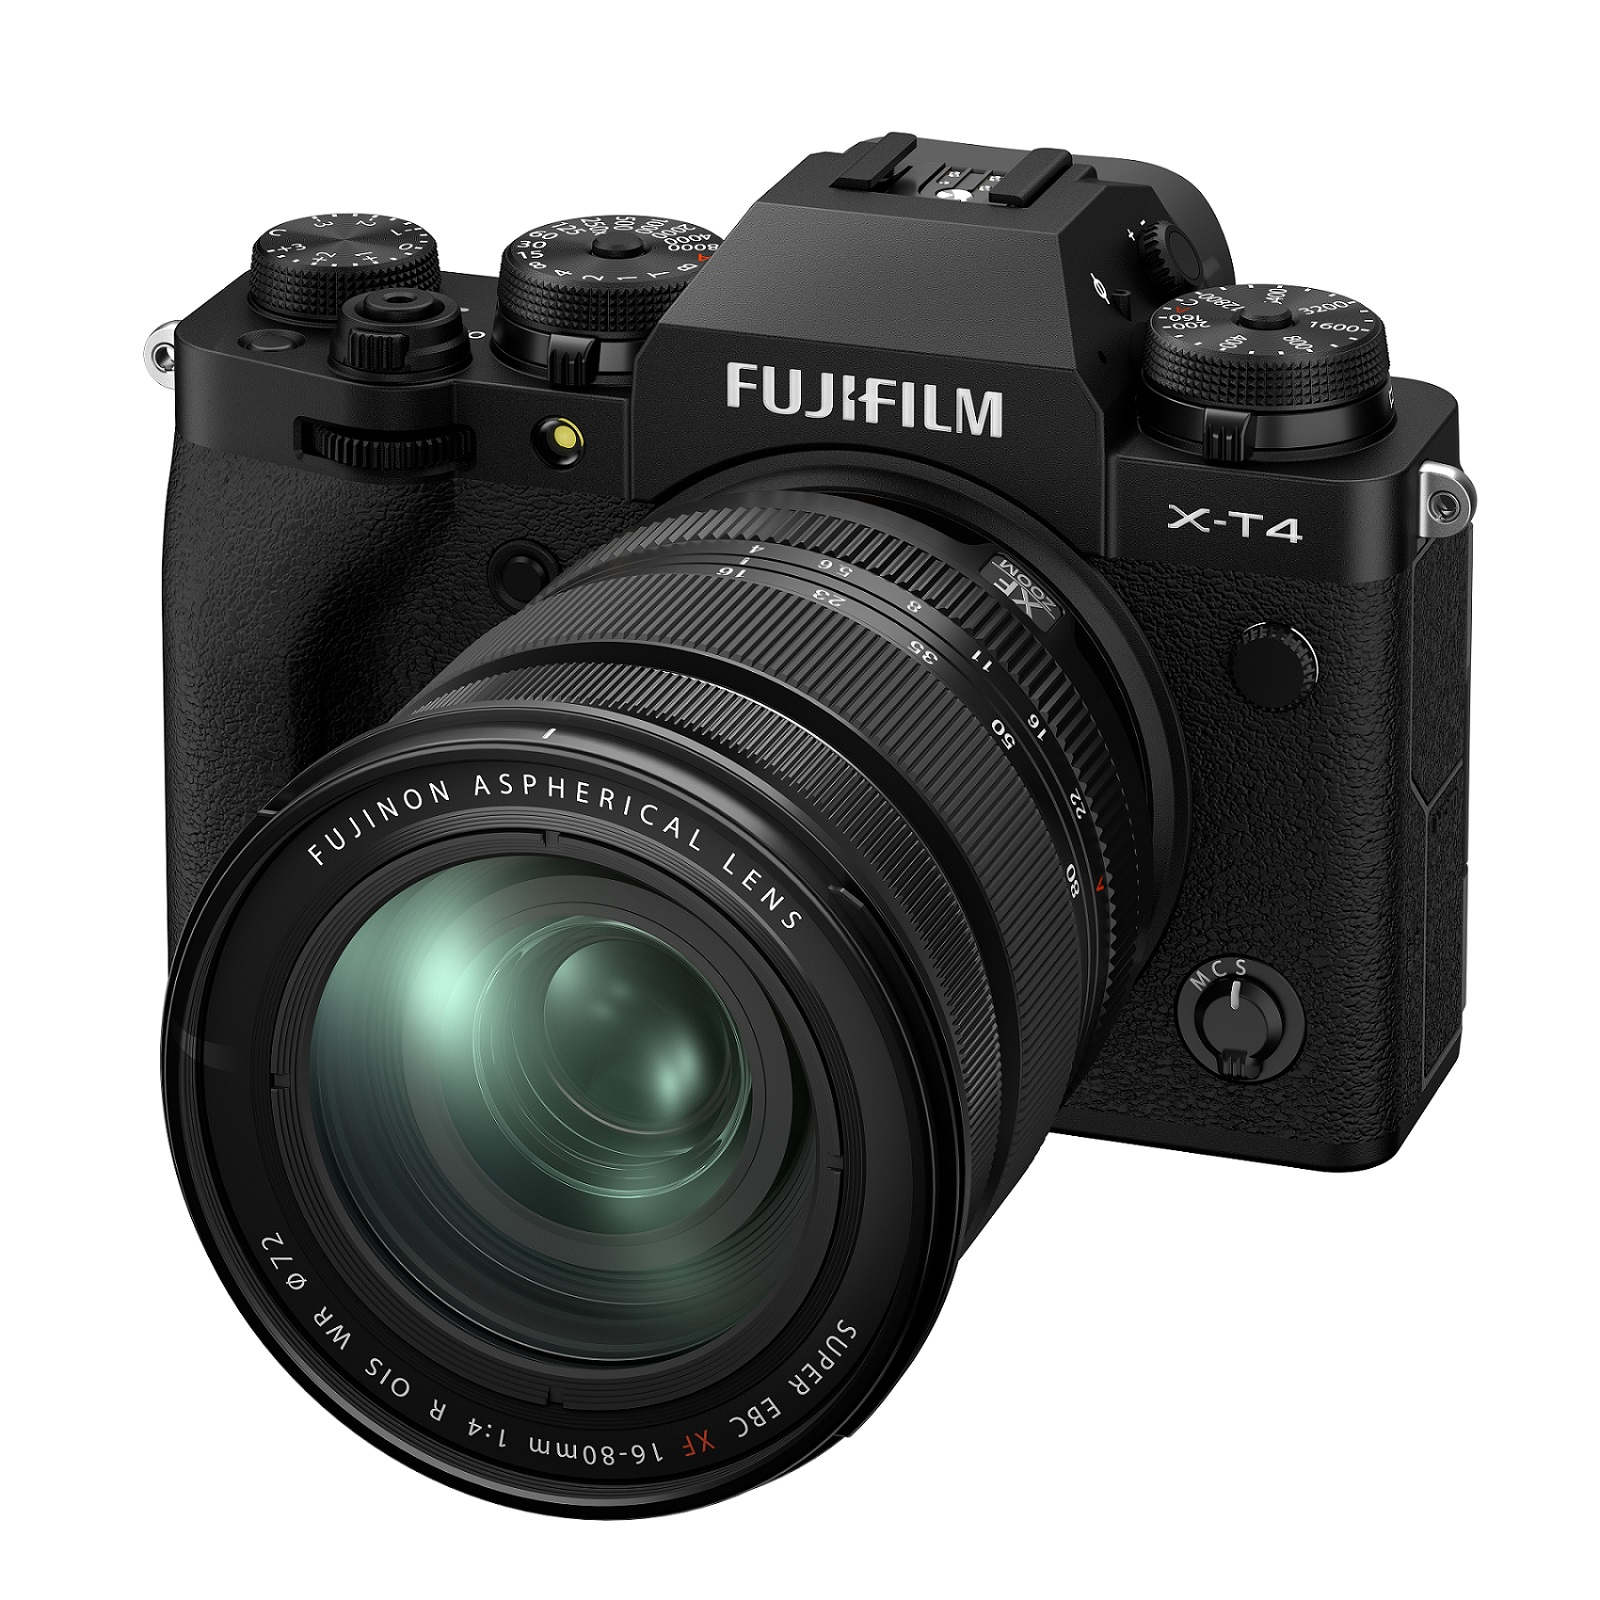 Fujifilm X-T4 improves on an already solid camera - Newsshooter